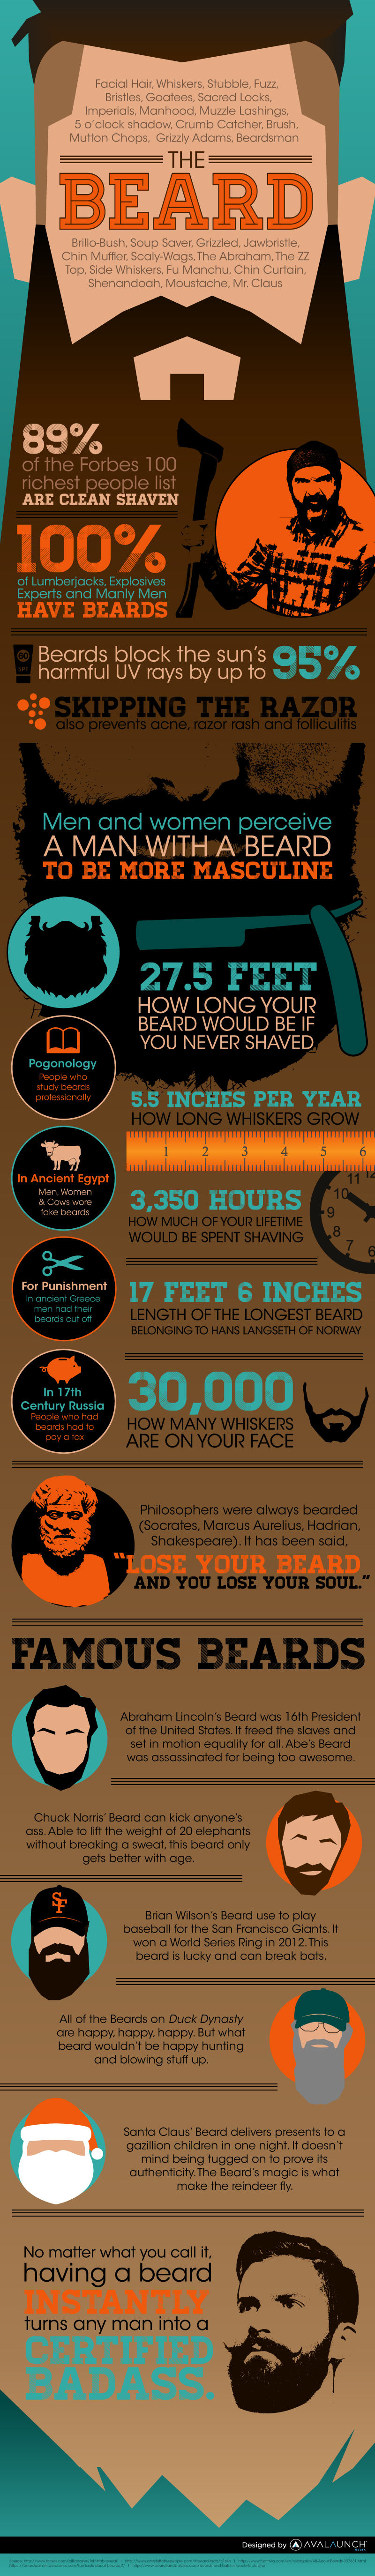 The Beard Infographic